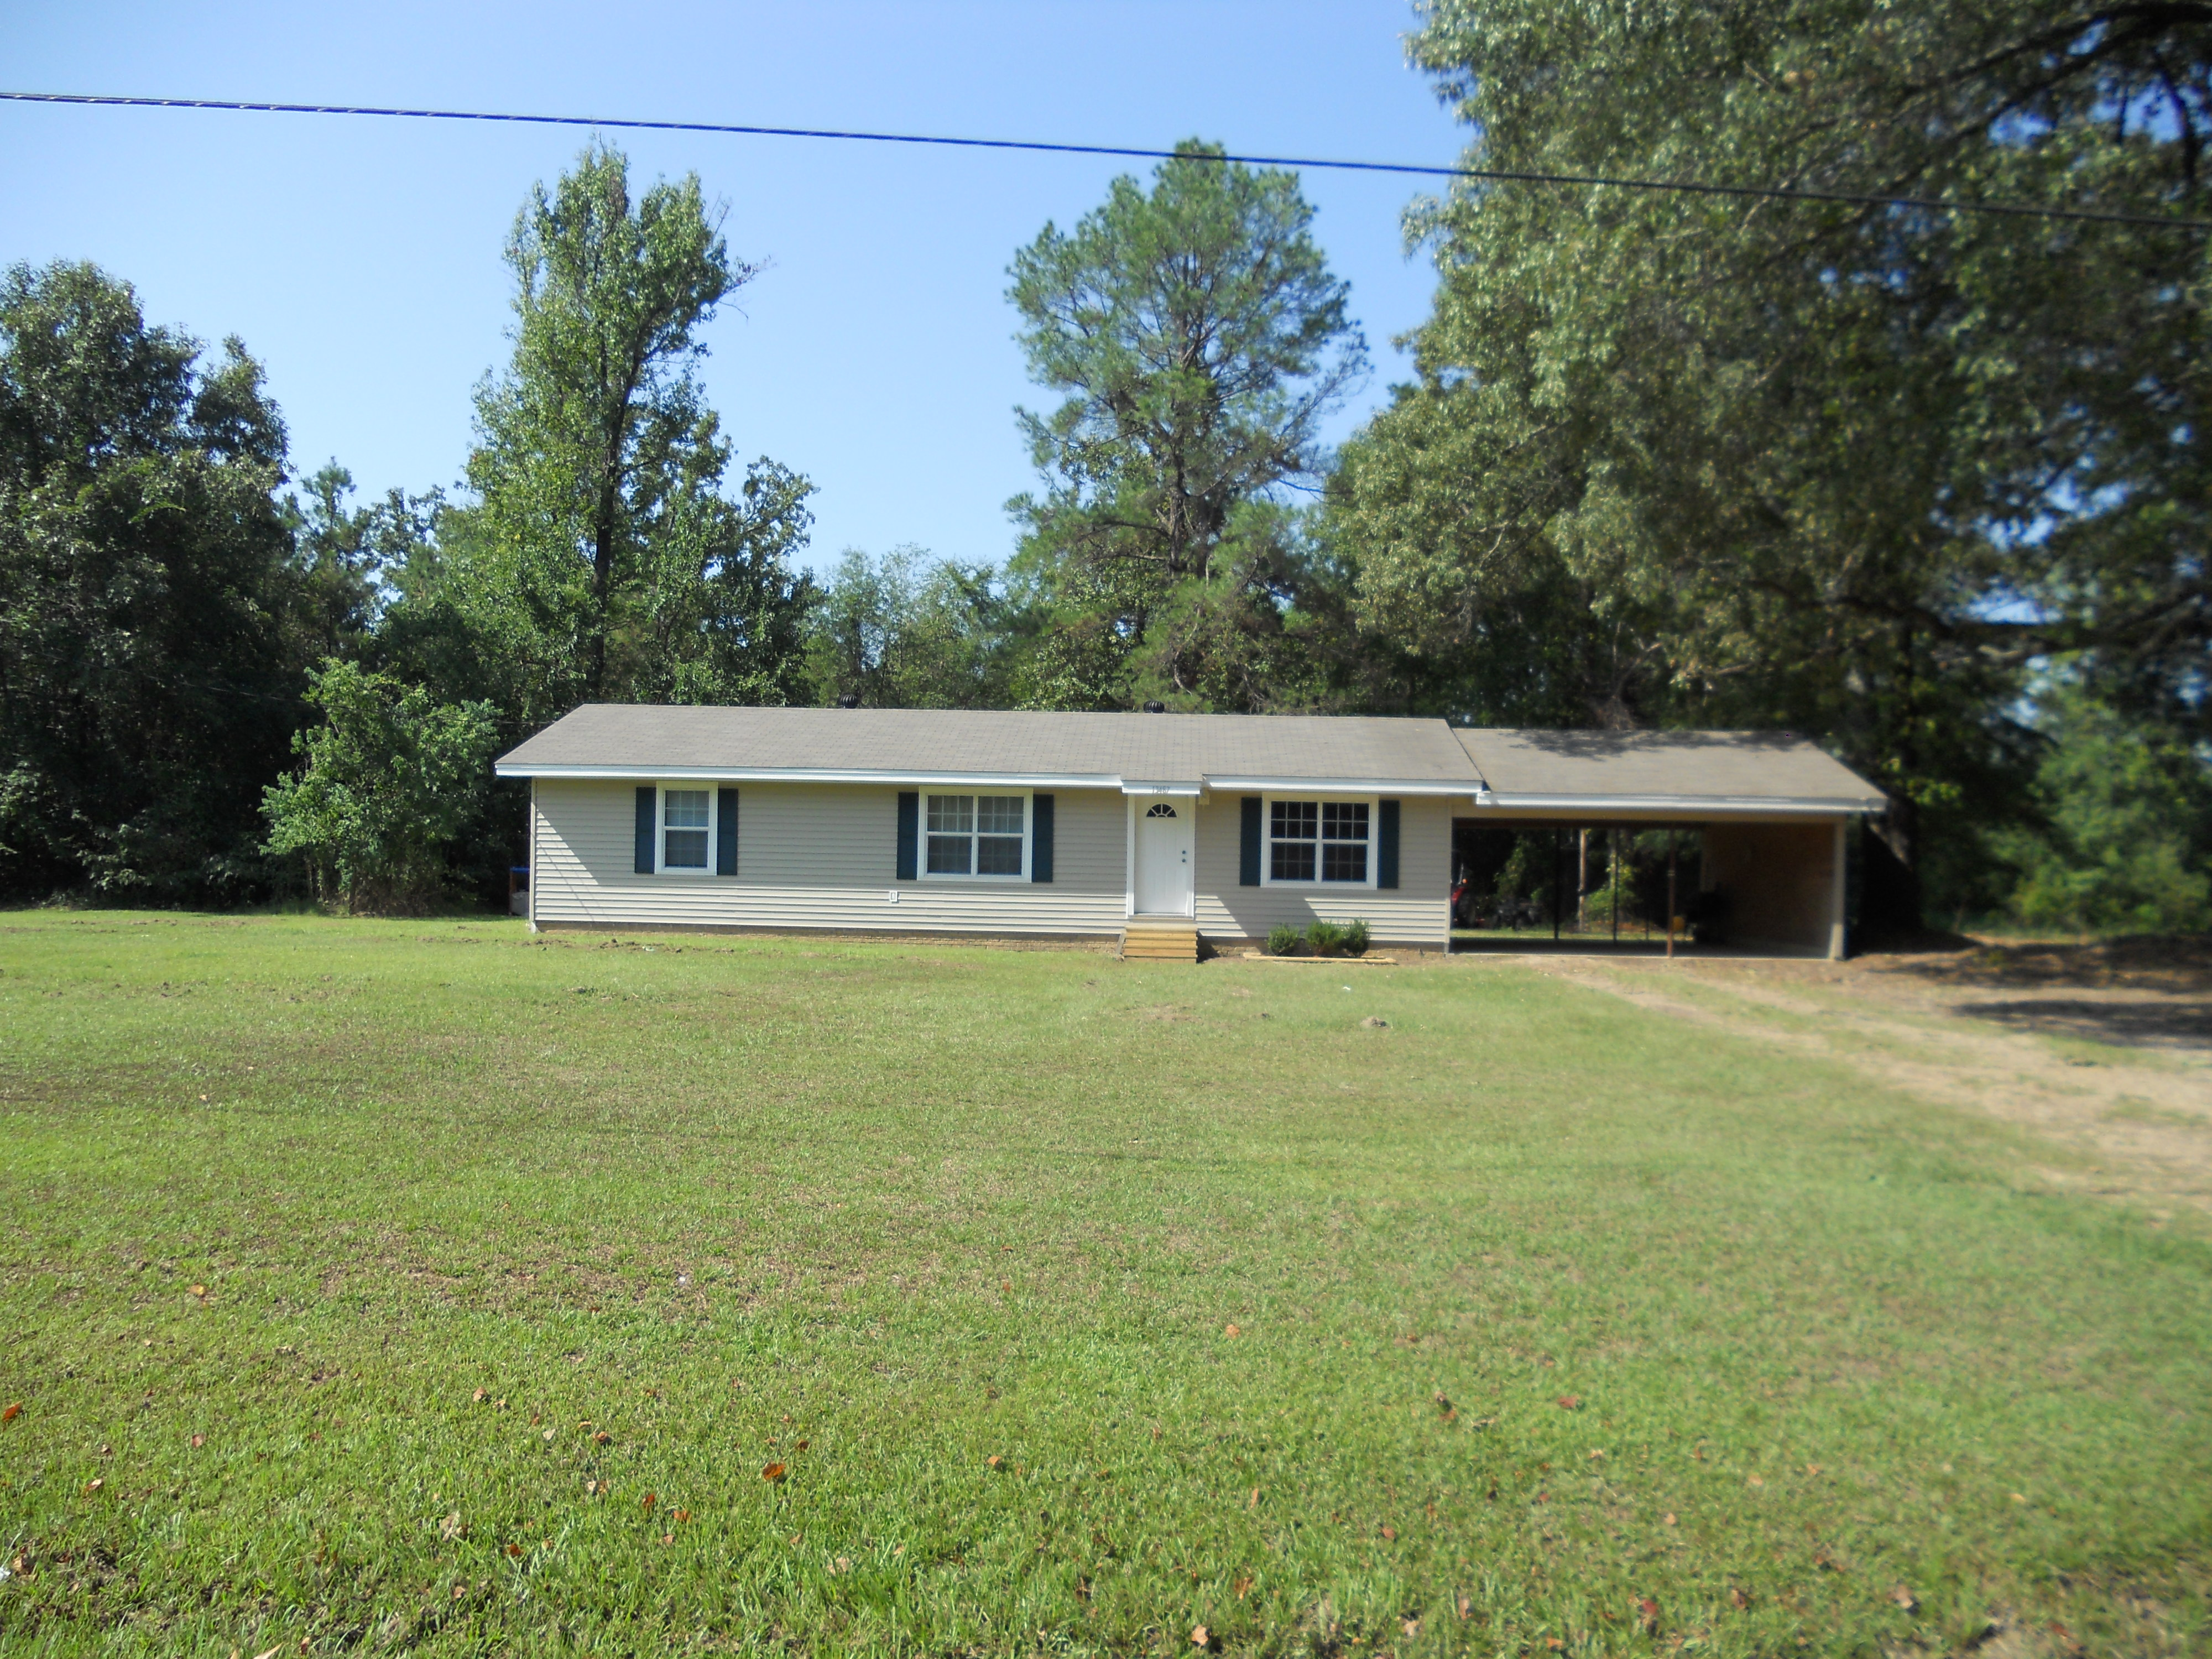 Primary photo for: 150494. Located at 13487 Carpenter Bastrop LA 71220